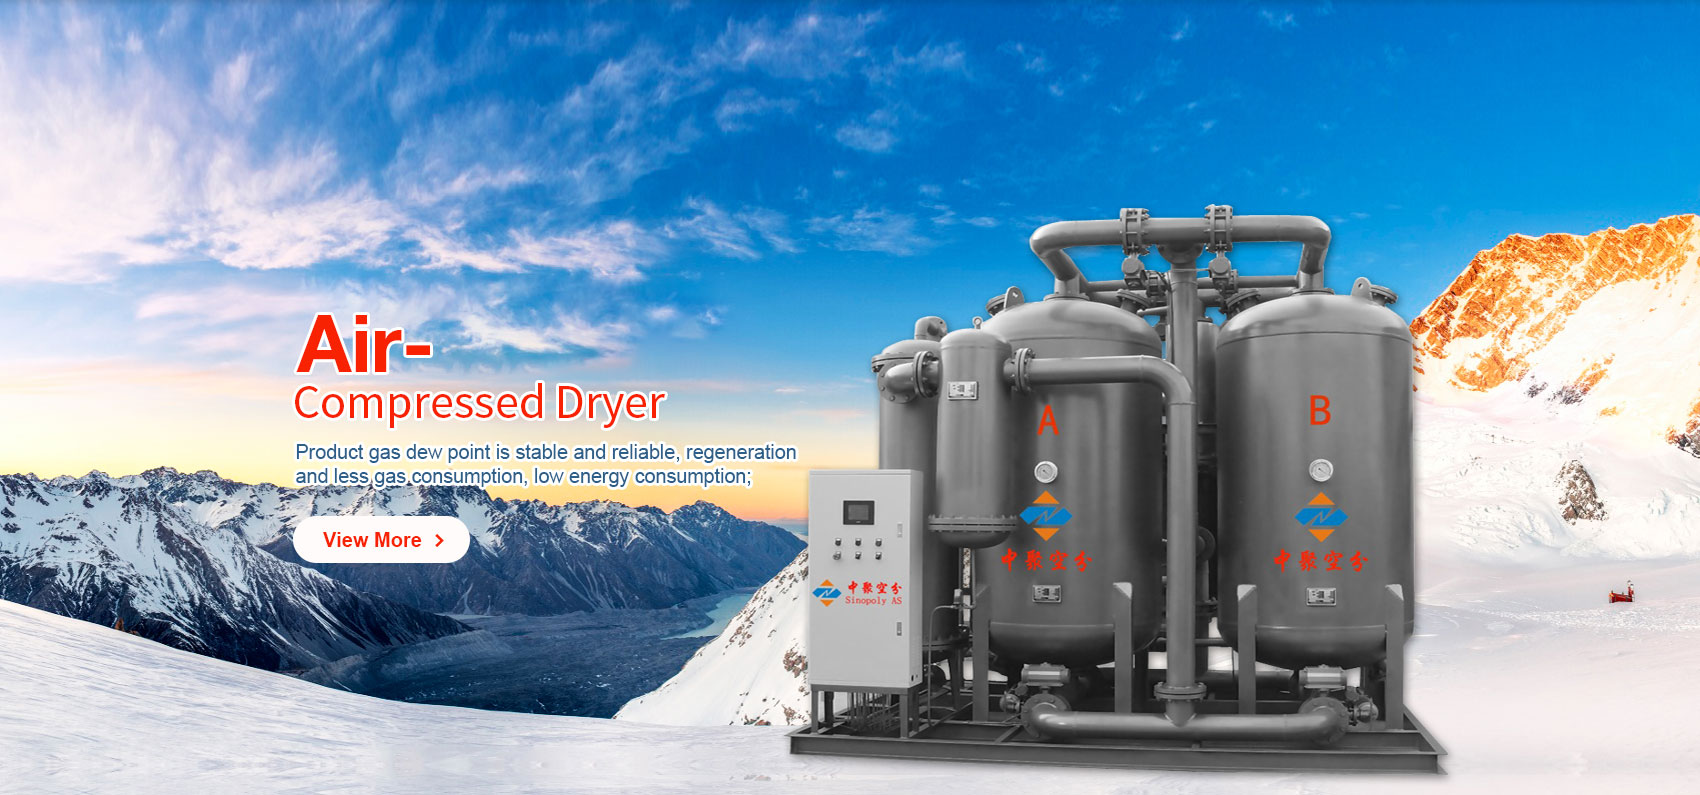 Air-compressed-dryer1